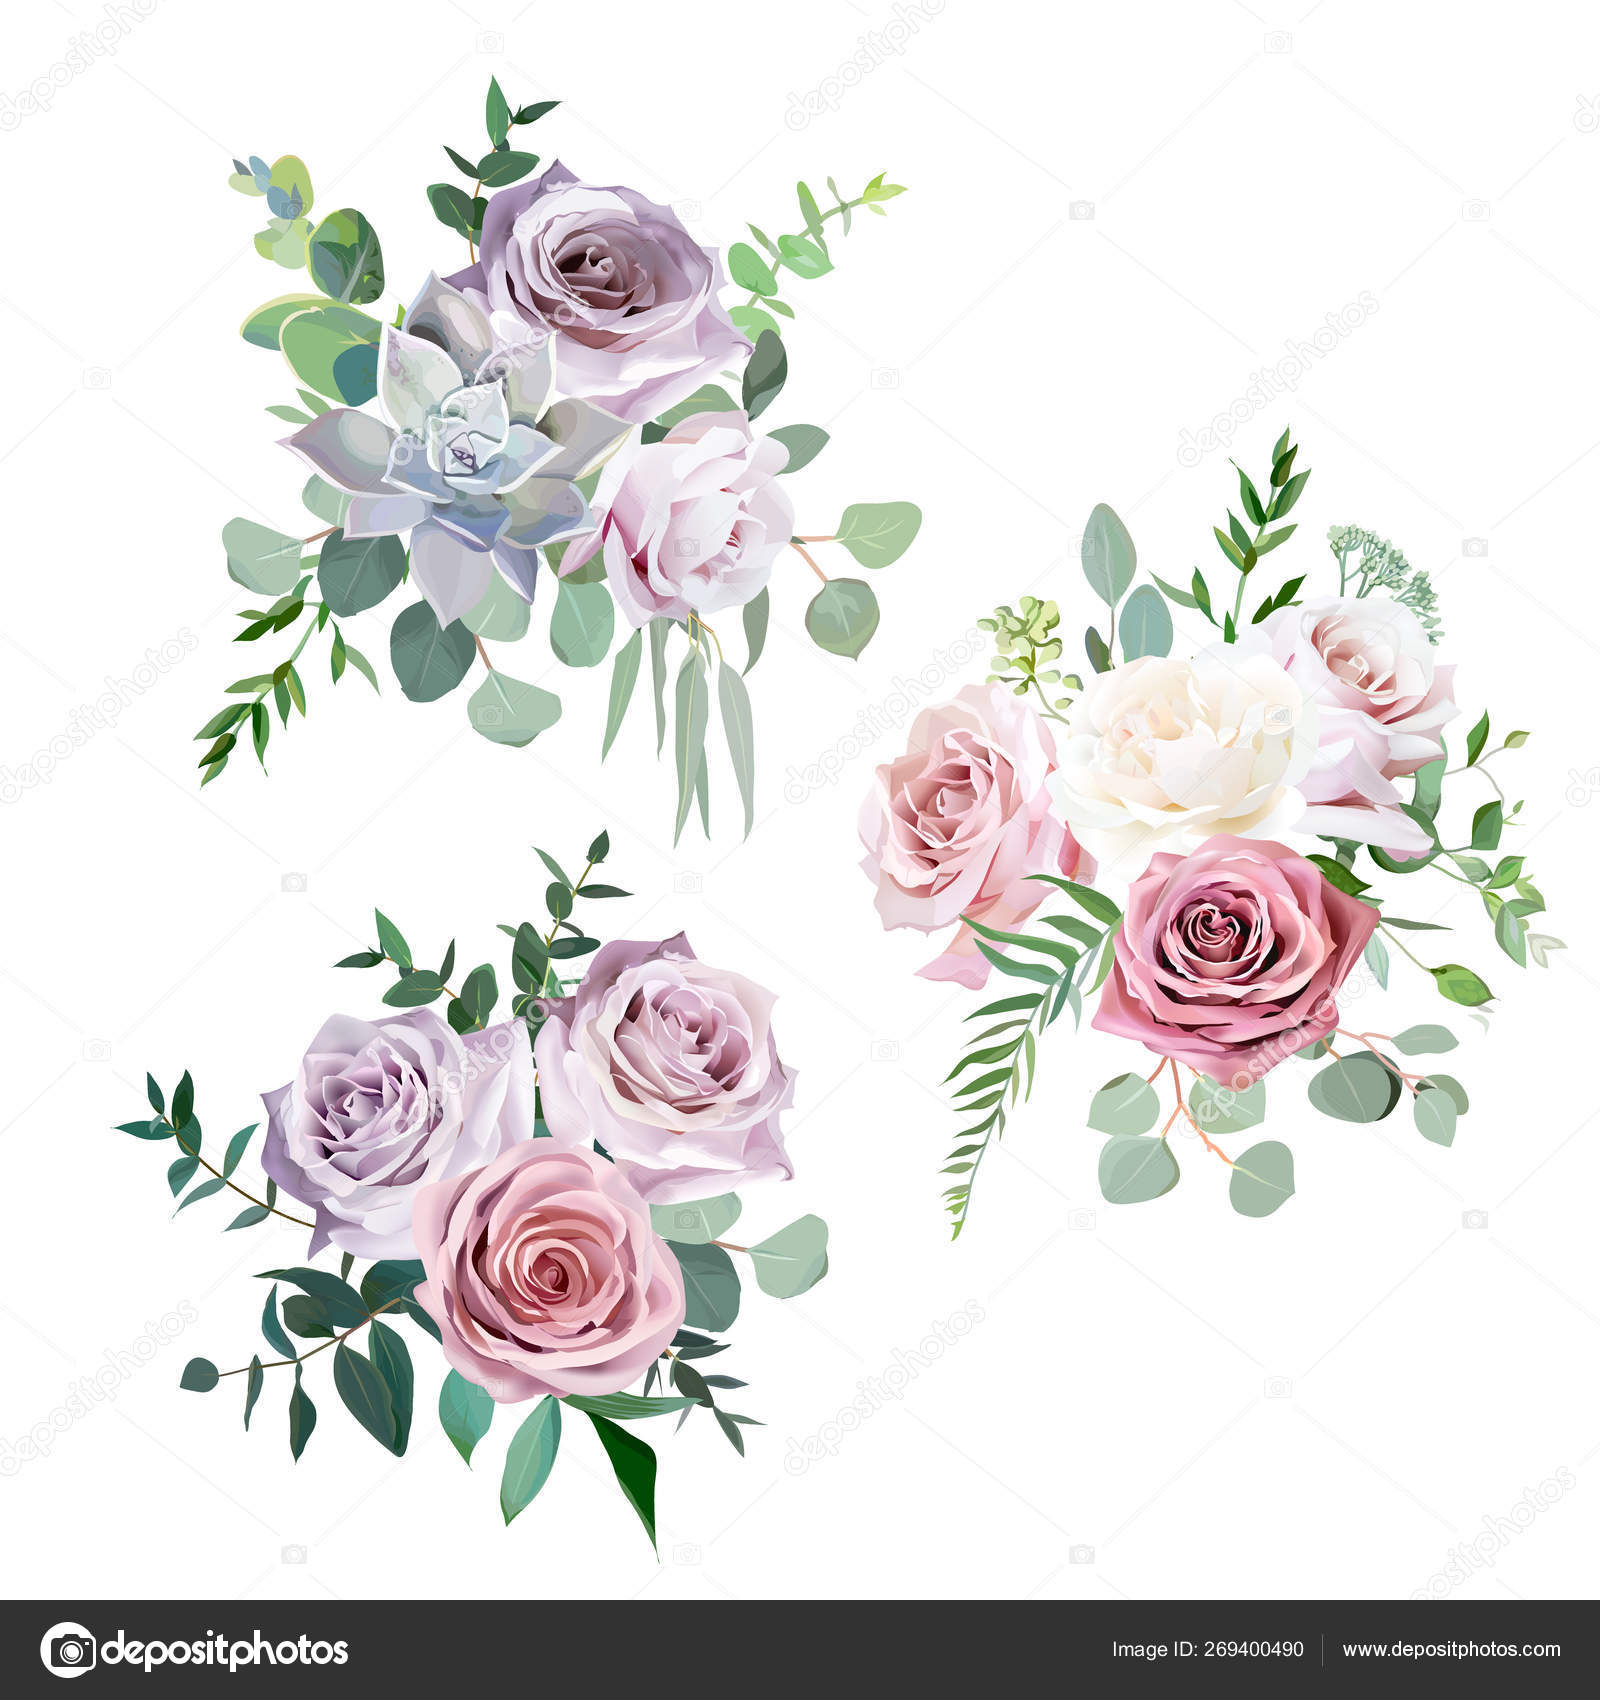 Dusty Pink Flowers Weddings Dusty Pink Creamy White And Mauve Antique Rose Vector Design Wedding Bouquets Stock Vector C Lavendertime 269400490